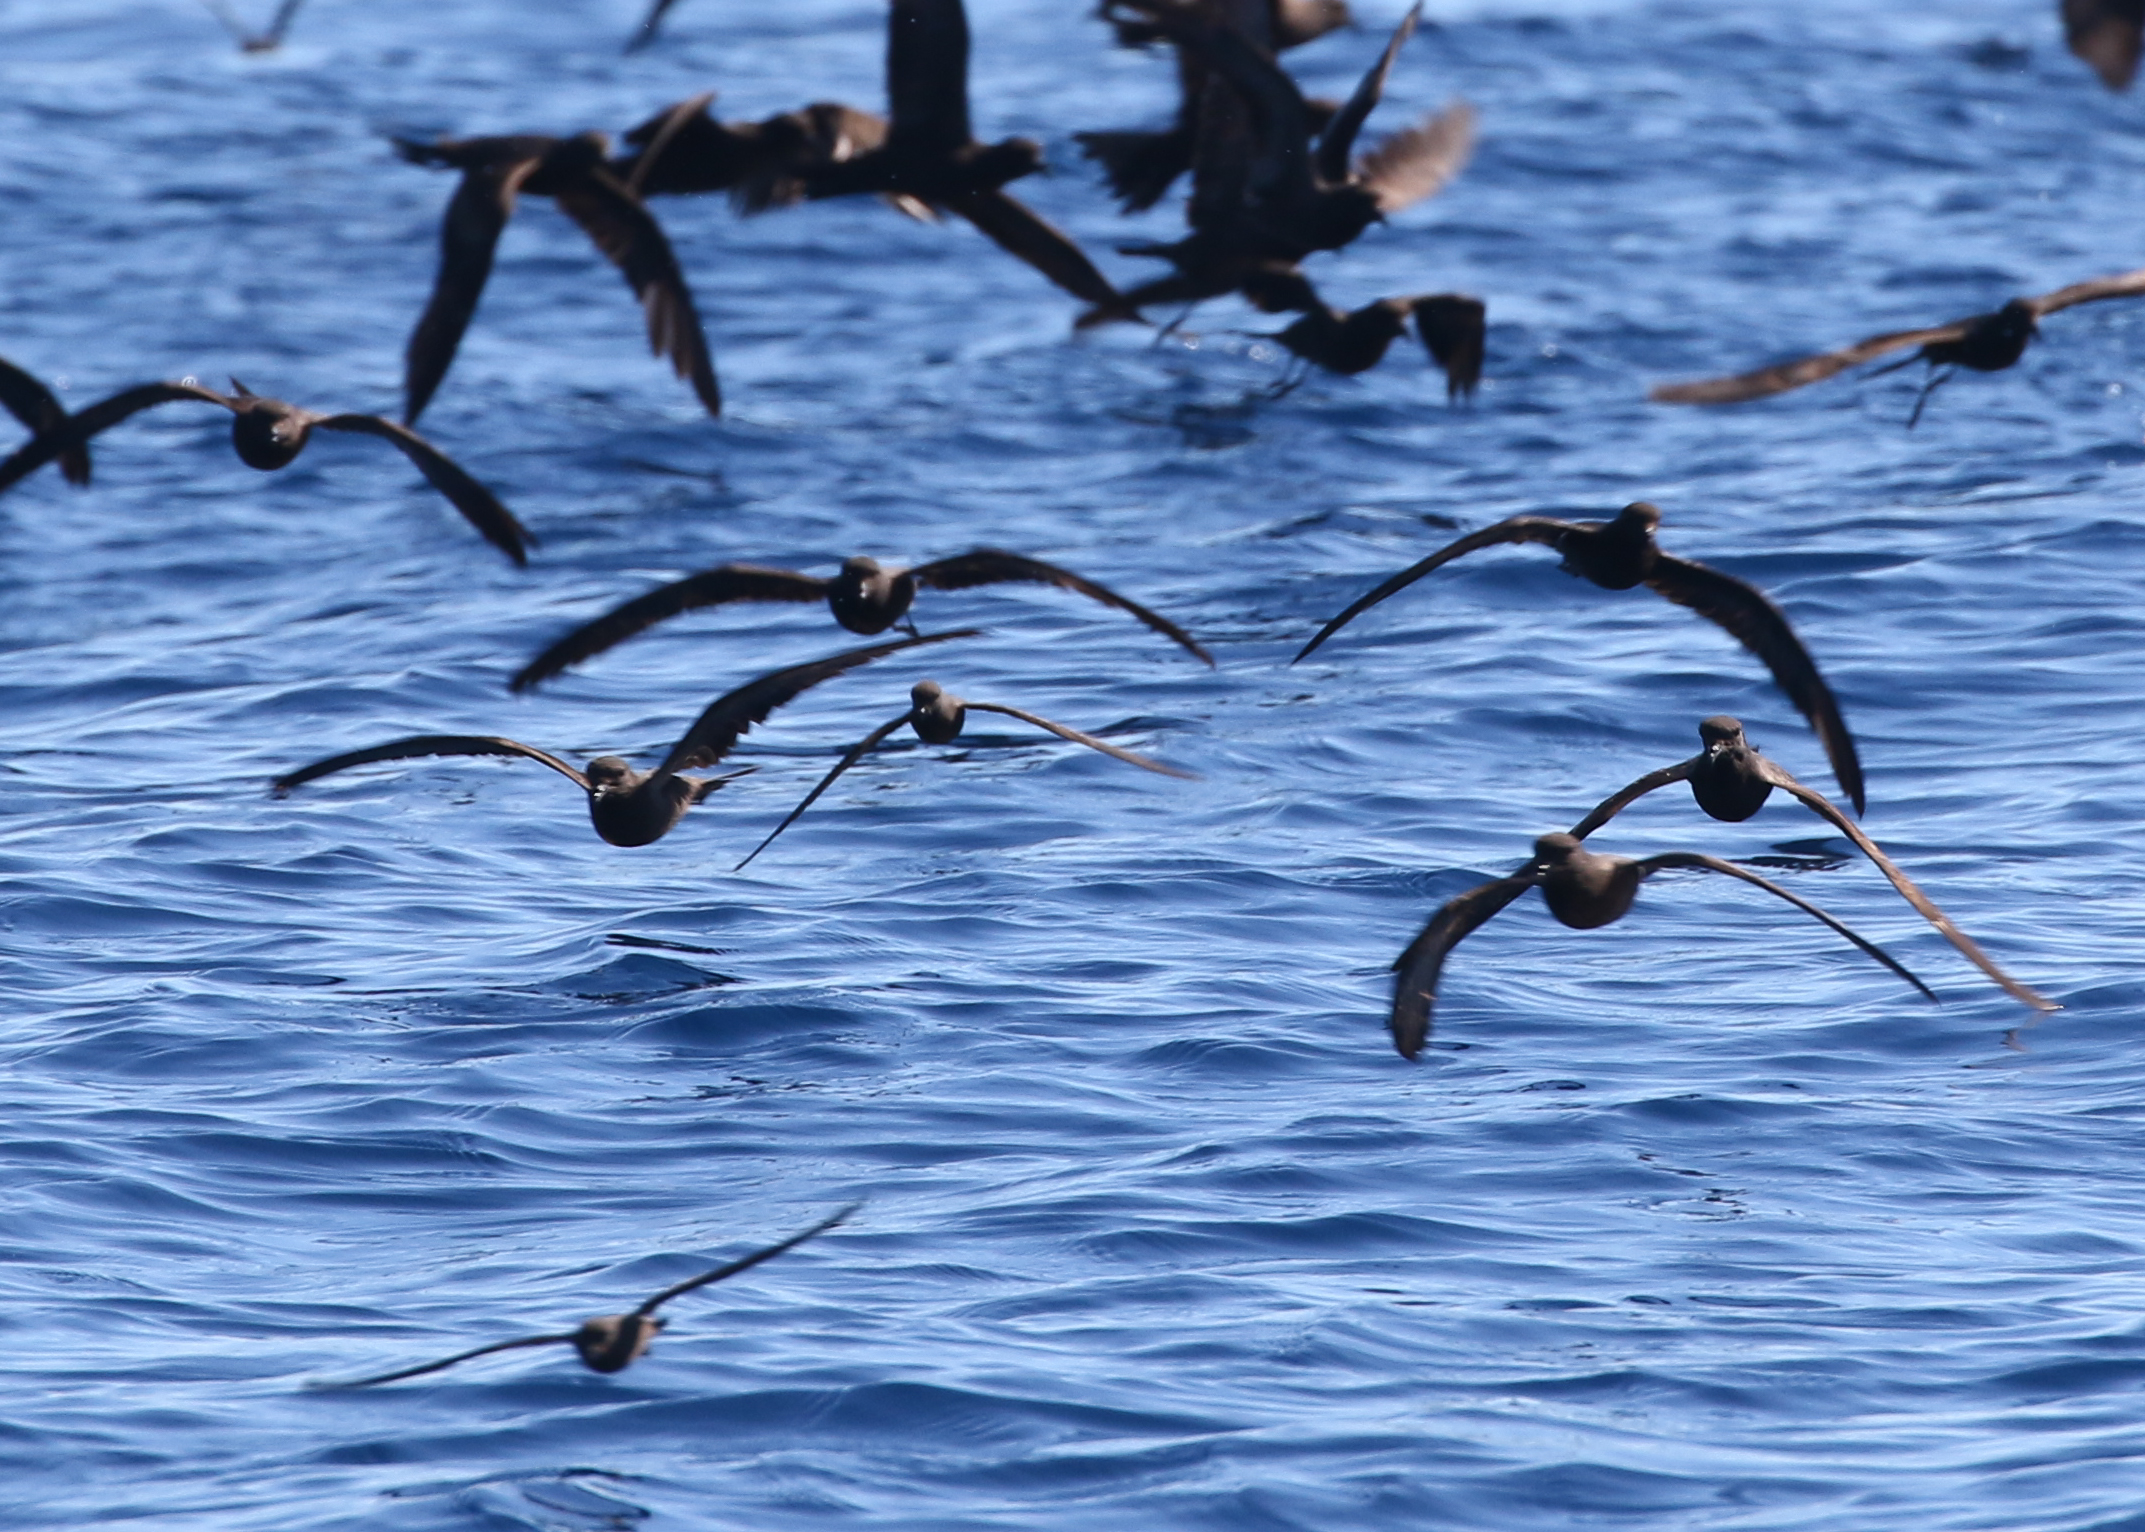 A flock of storm-petrels heads right for us- Can you spot the Least(s) in this photo amongst the Blacks?